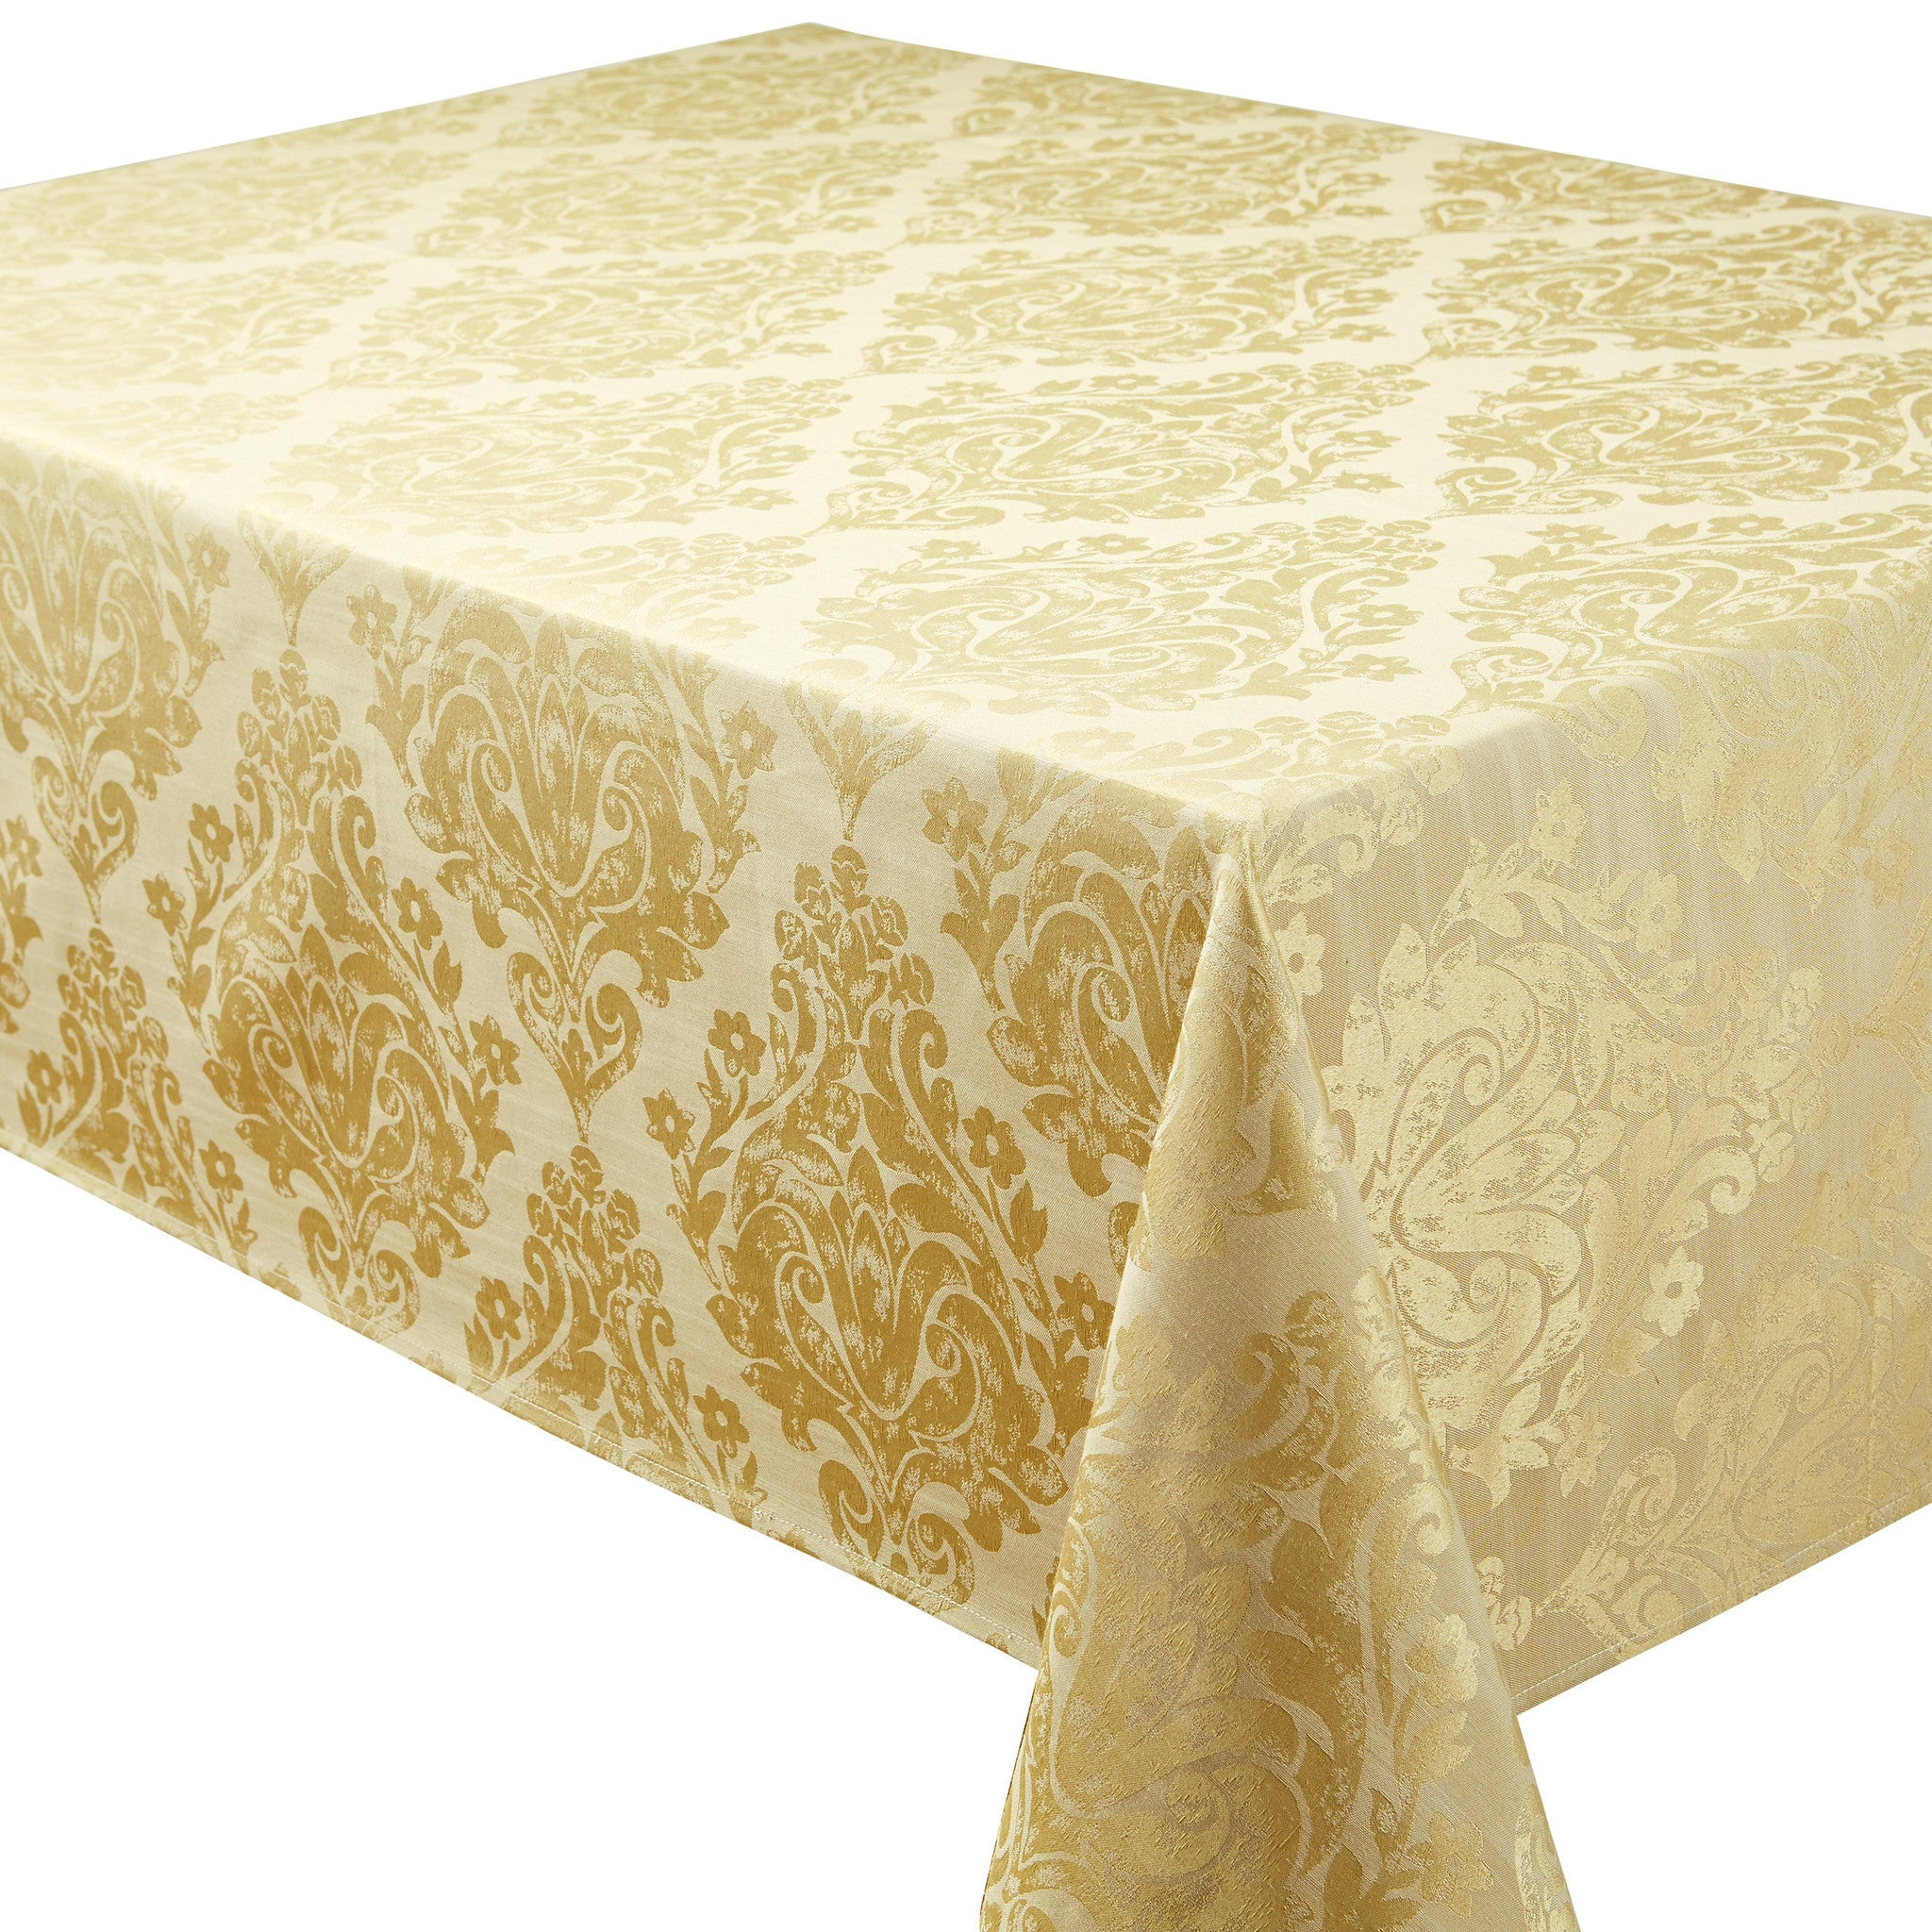 ... Palazzo Damask Antique Gold Table Cloth And Accessory Range ...